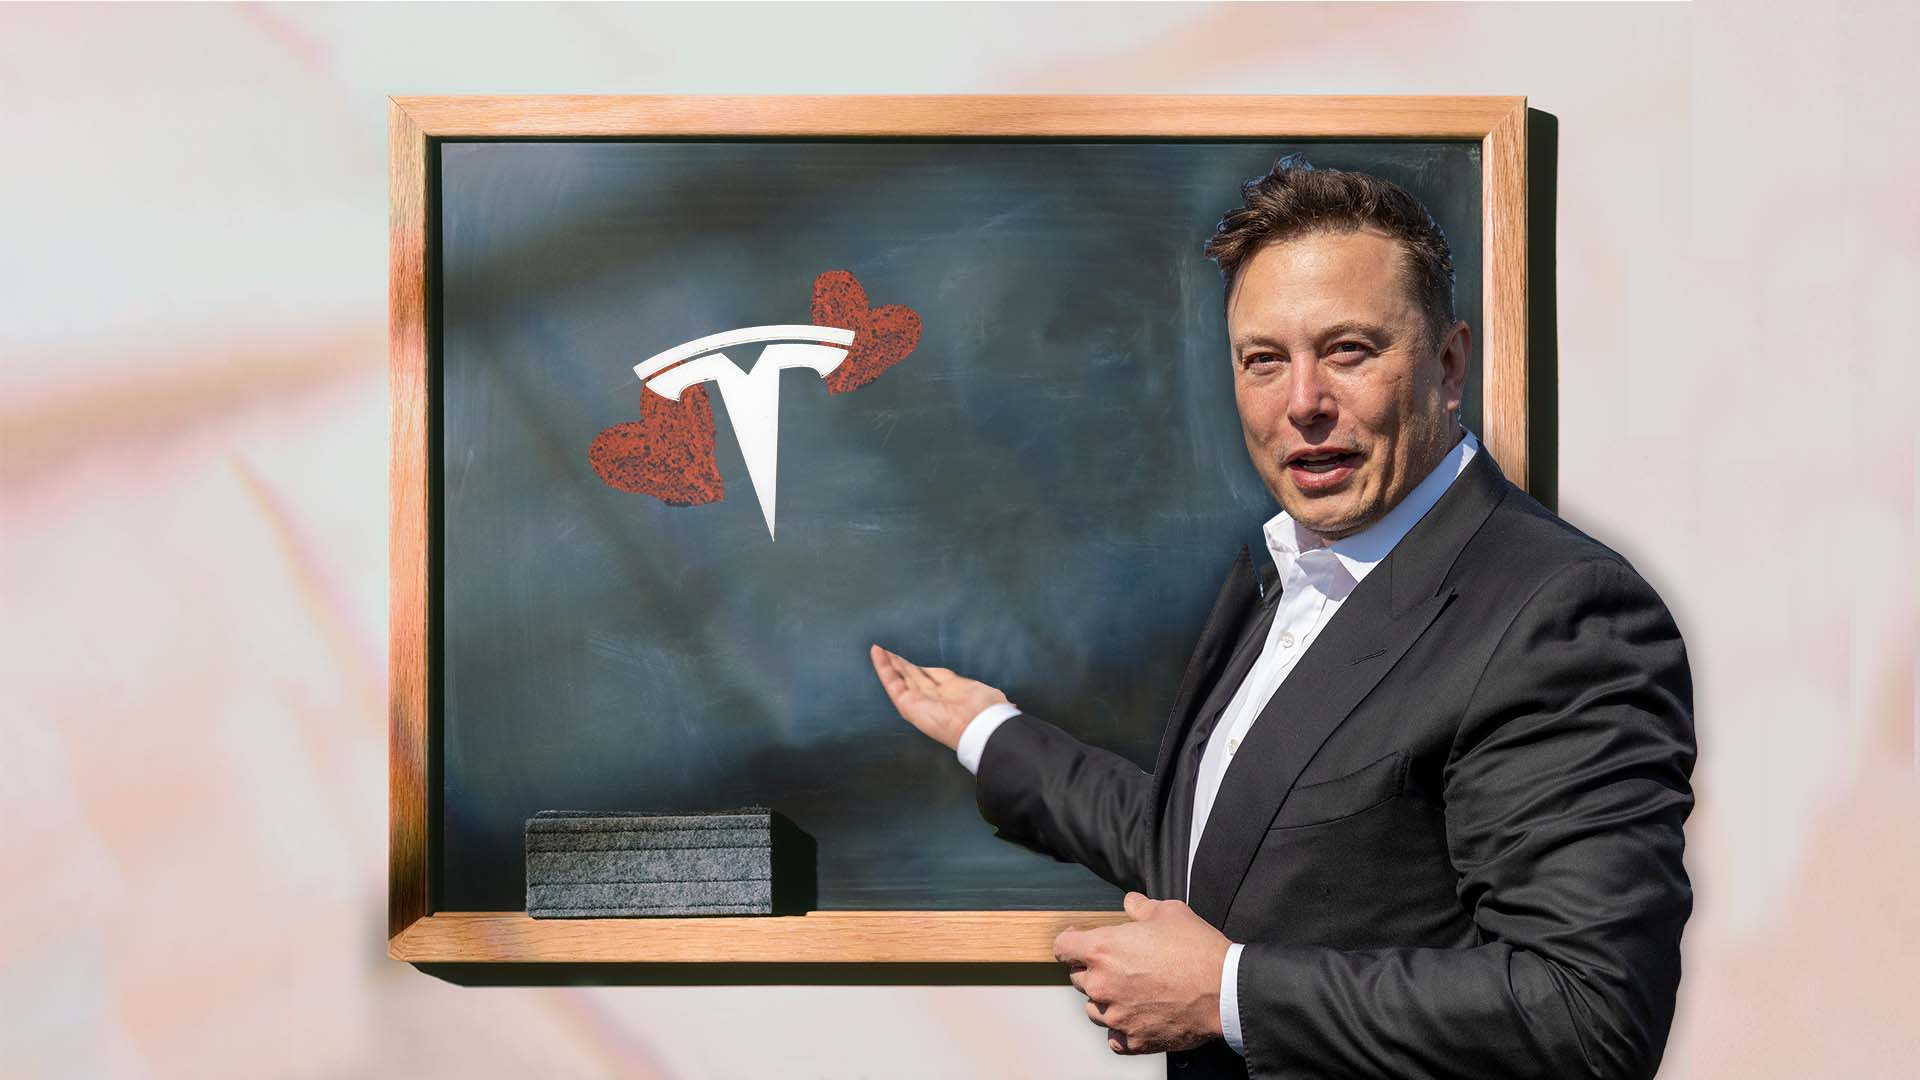 Elon Musk Just Taught a Huge Lesson to Every CEO in America. I Hope They're Paying Attention